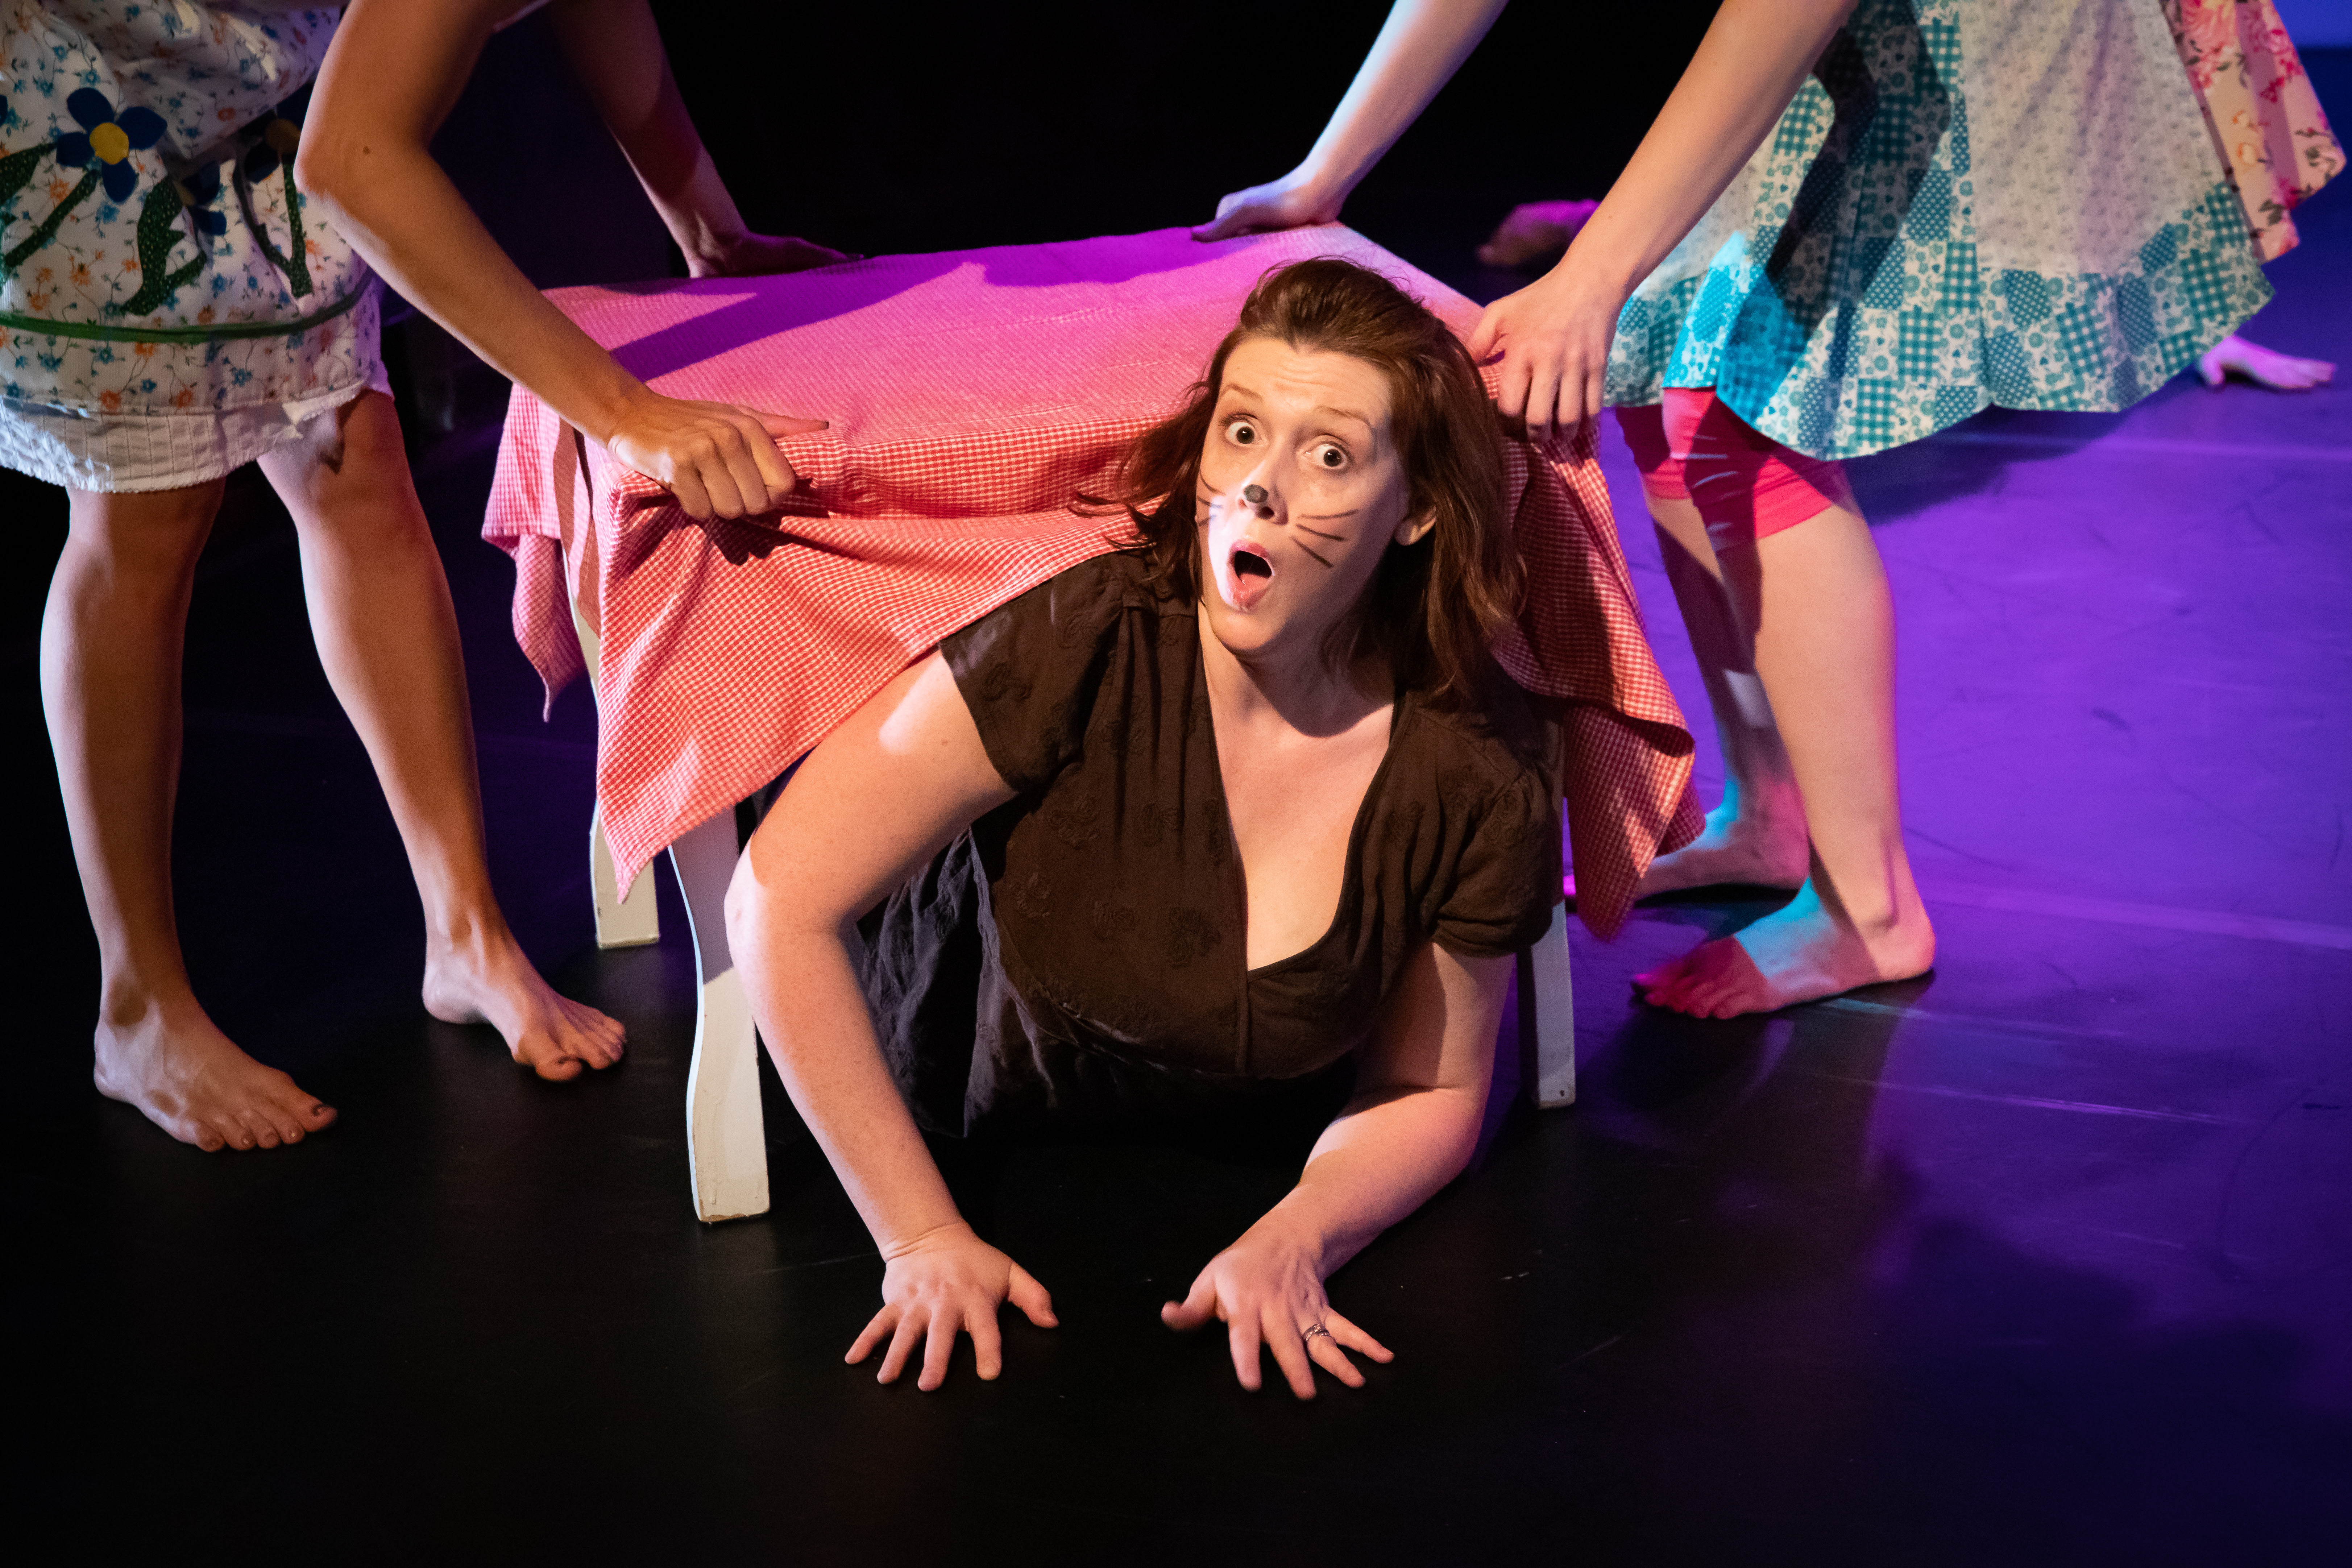 Jane Franklin Dance: Mouse in House